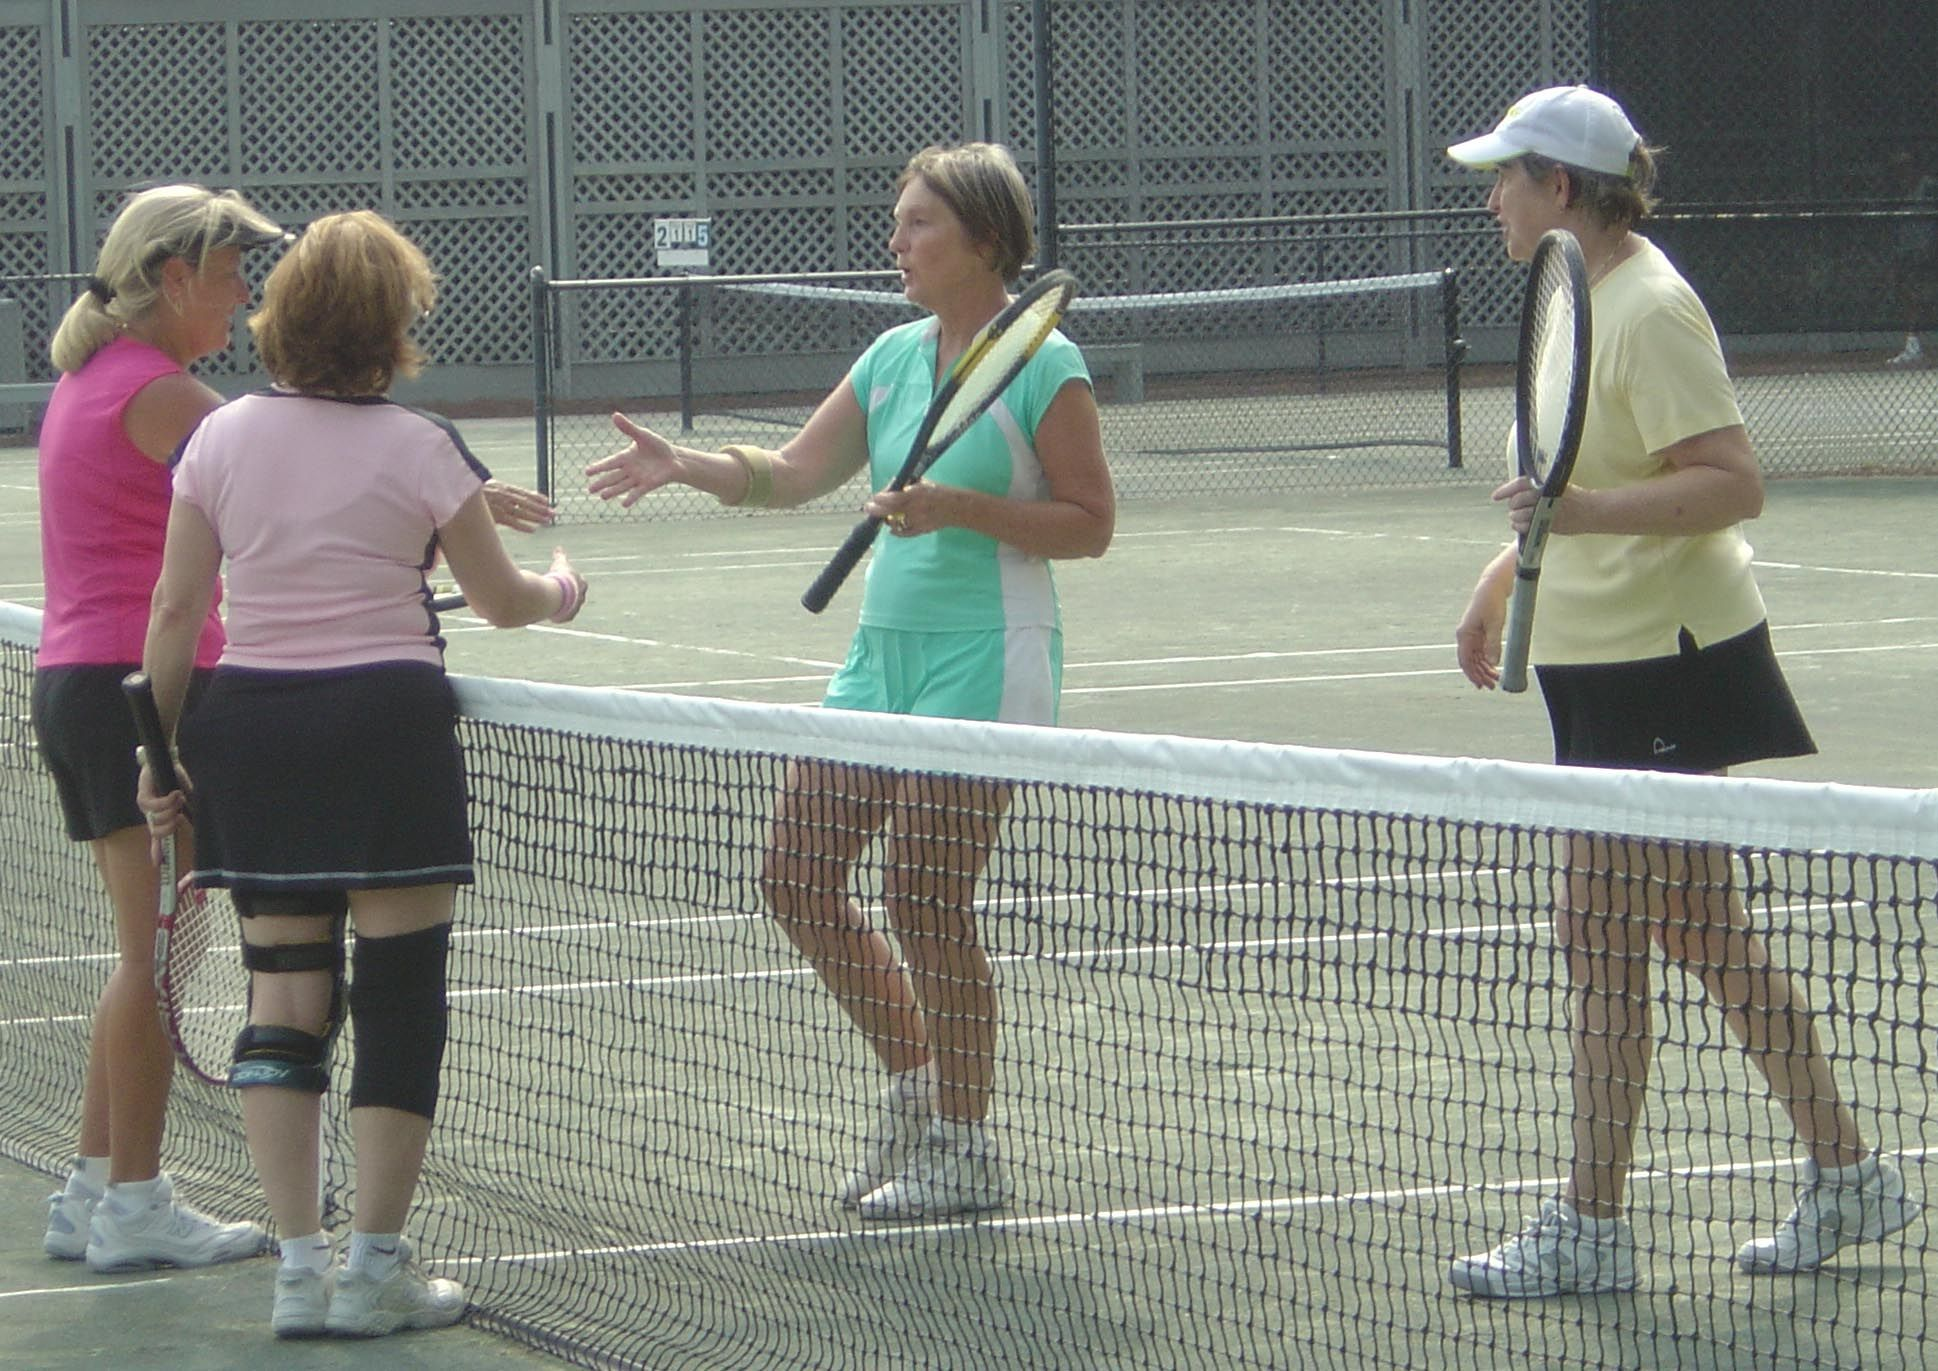 Adult League Tennis